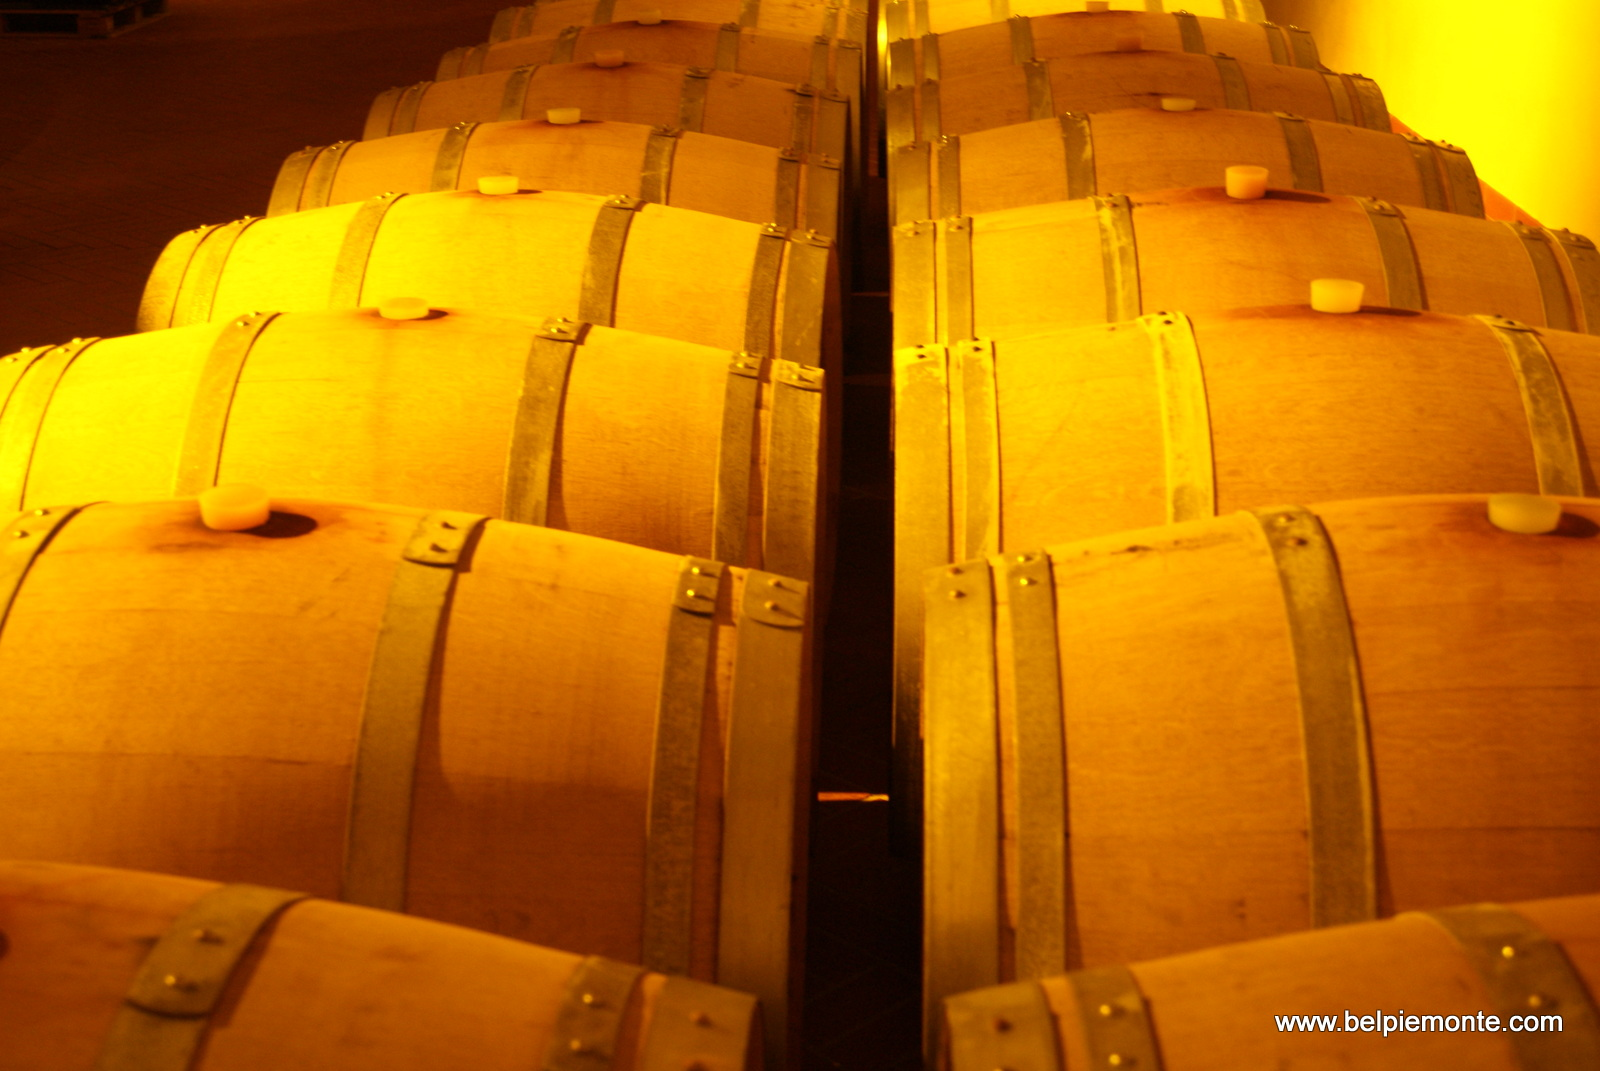 barriques where part of Barolo wine matures